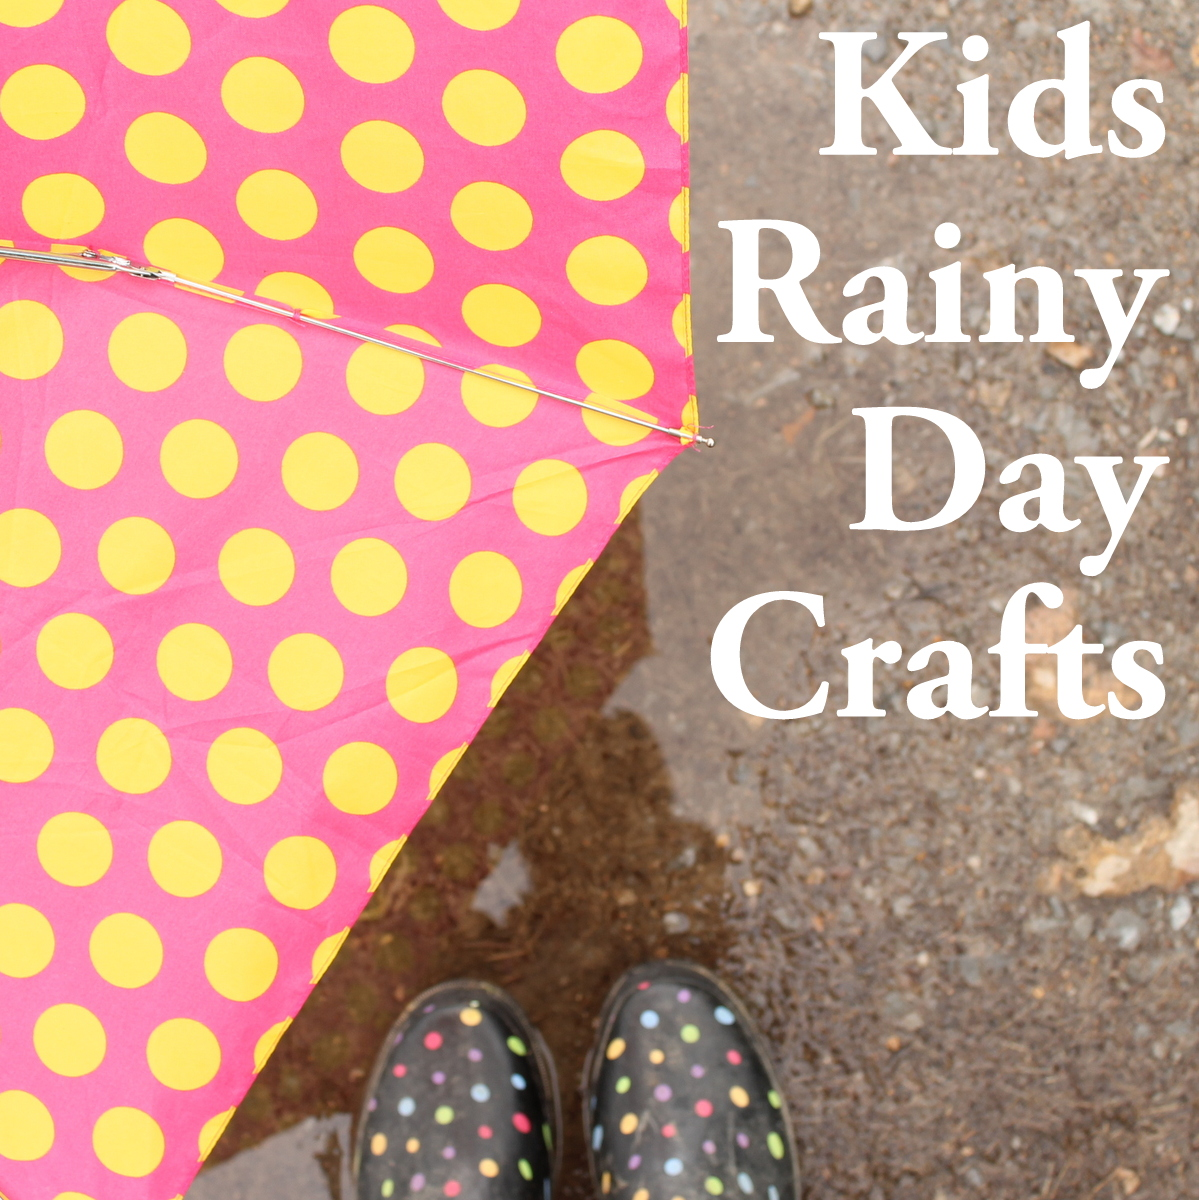 Rainy Day Crafts For Kids The Country Chic Cottage